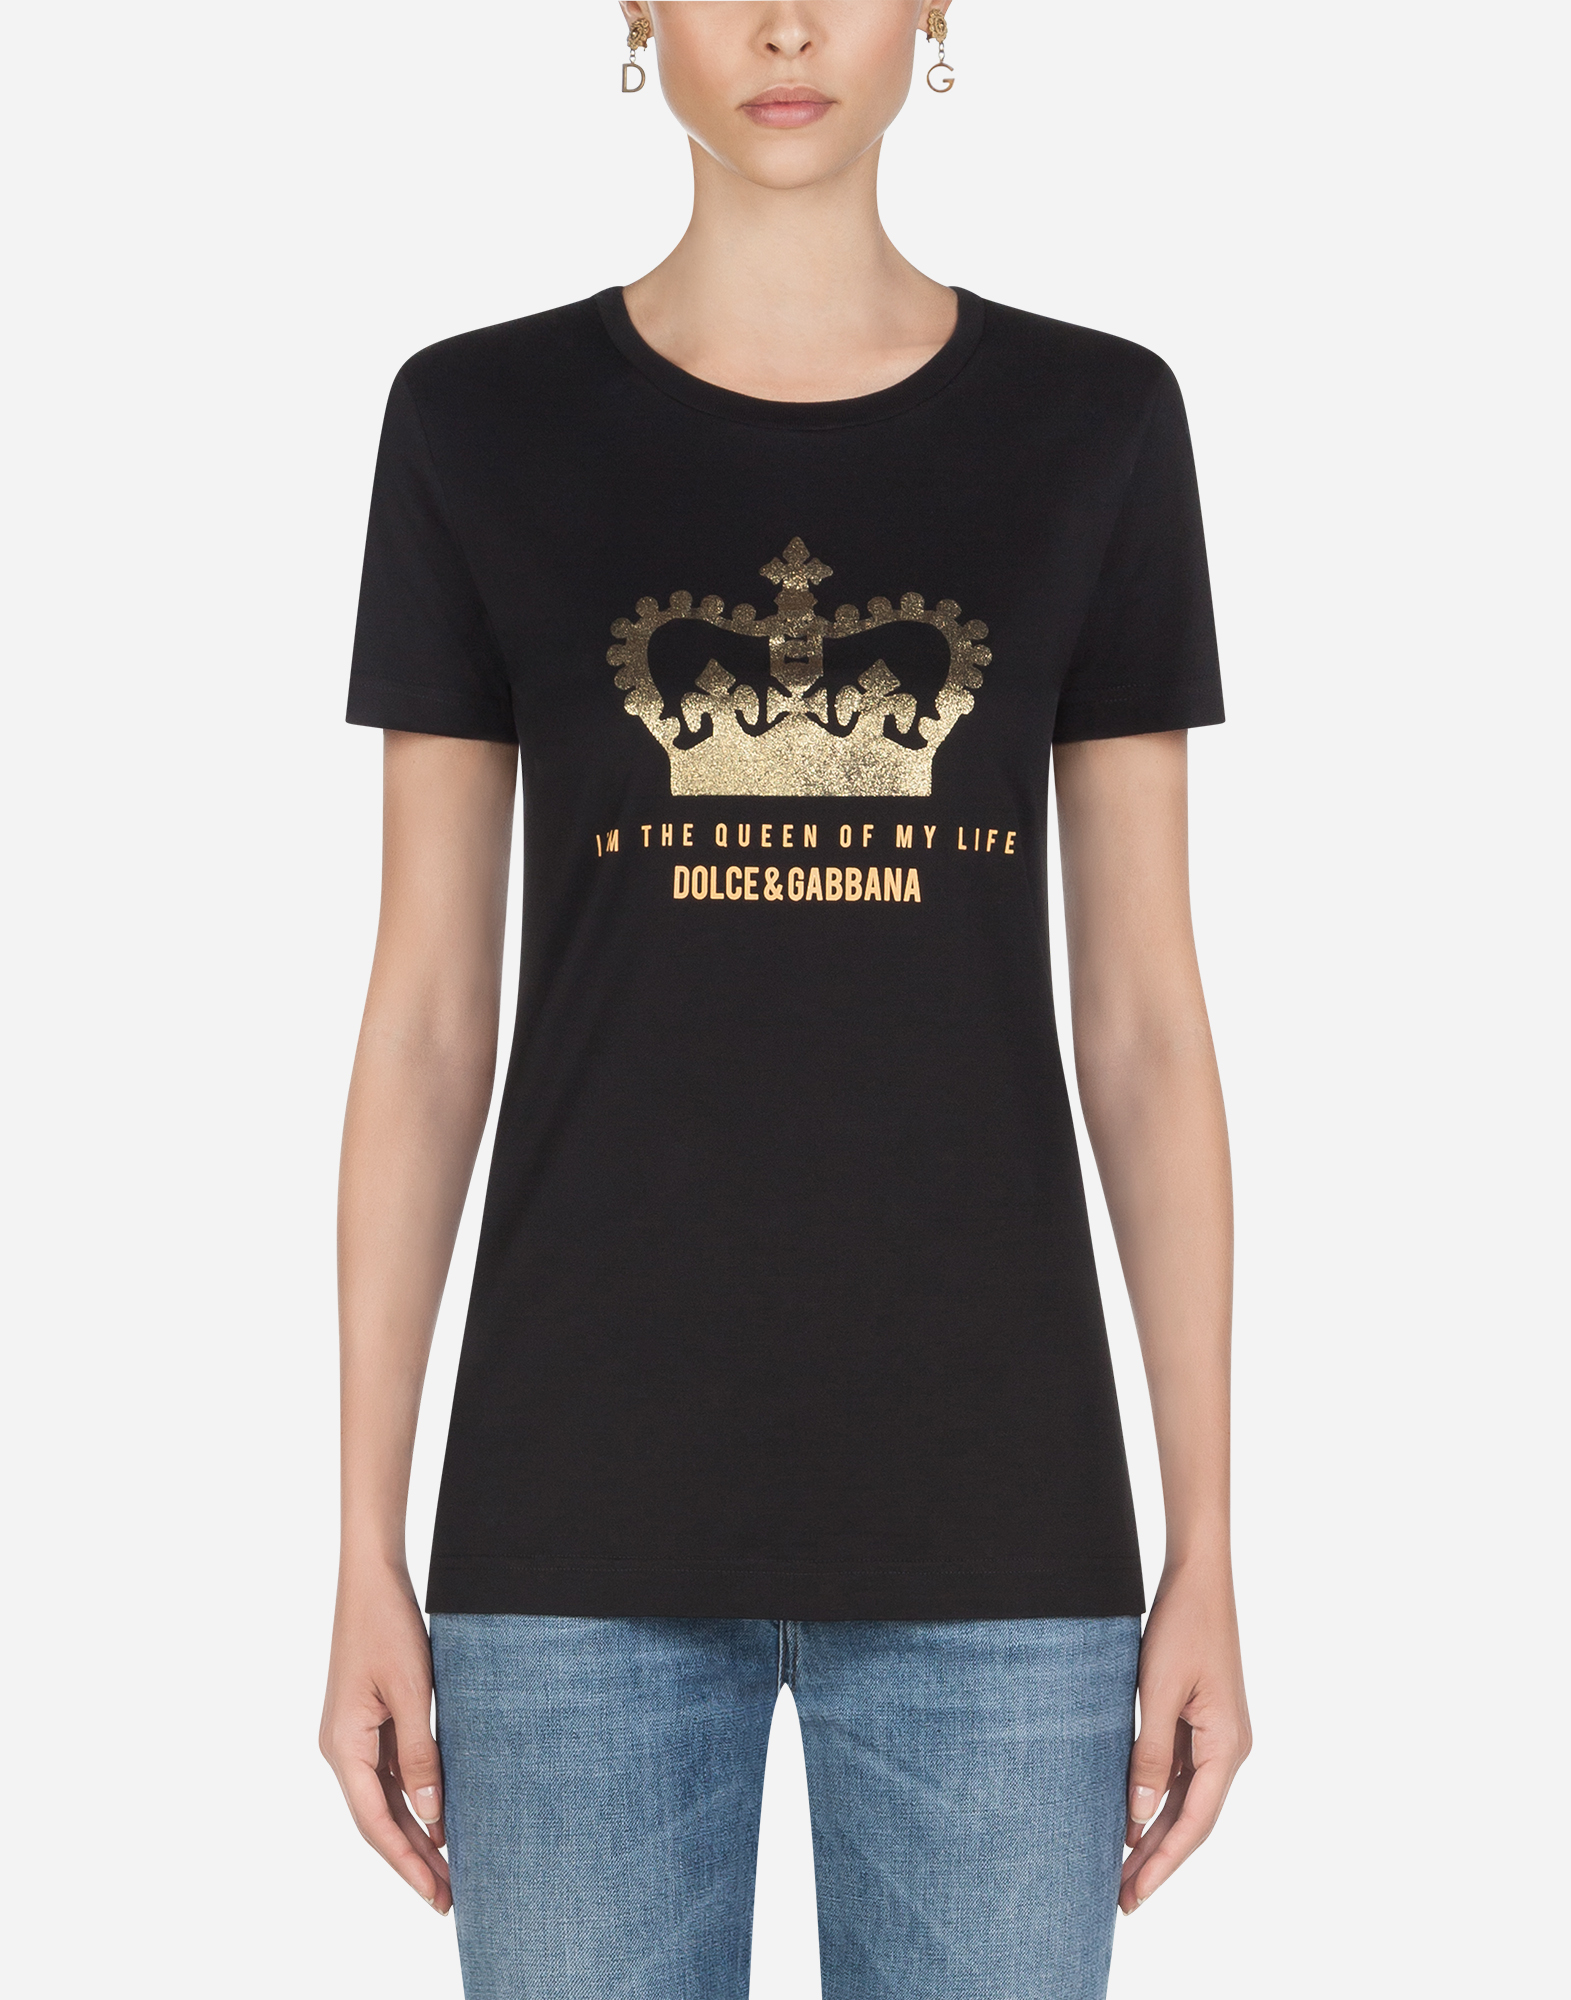 Dolce & Gabbana Glitter Crown Logo T-shirt In Black